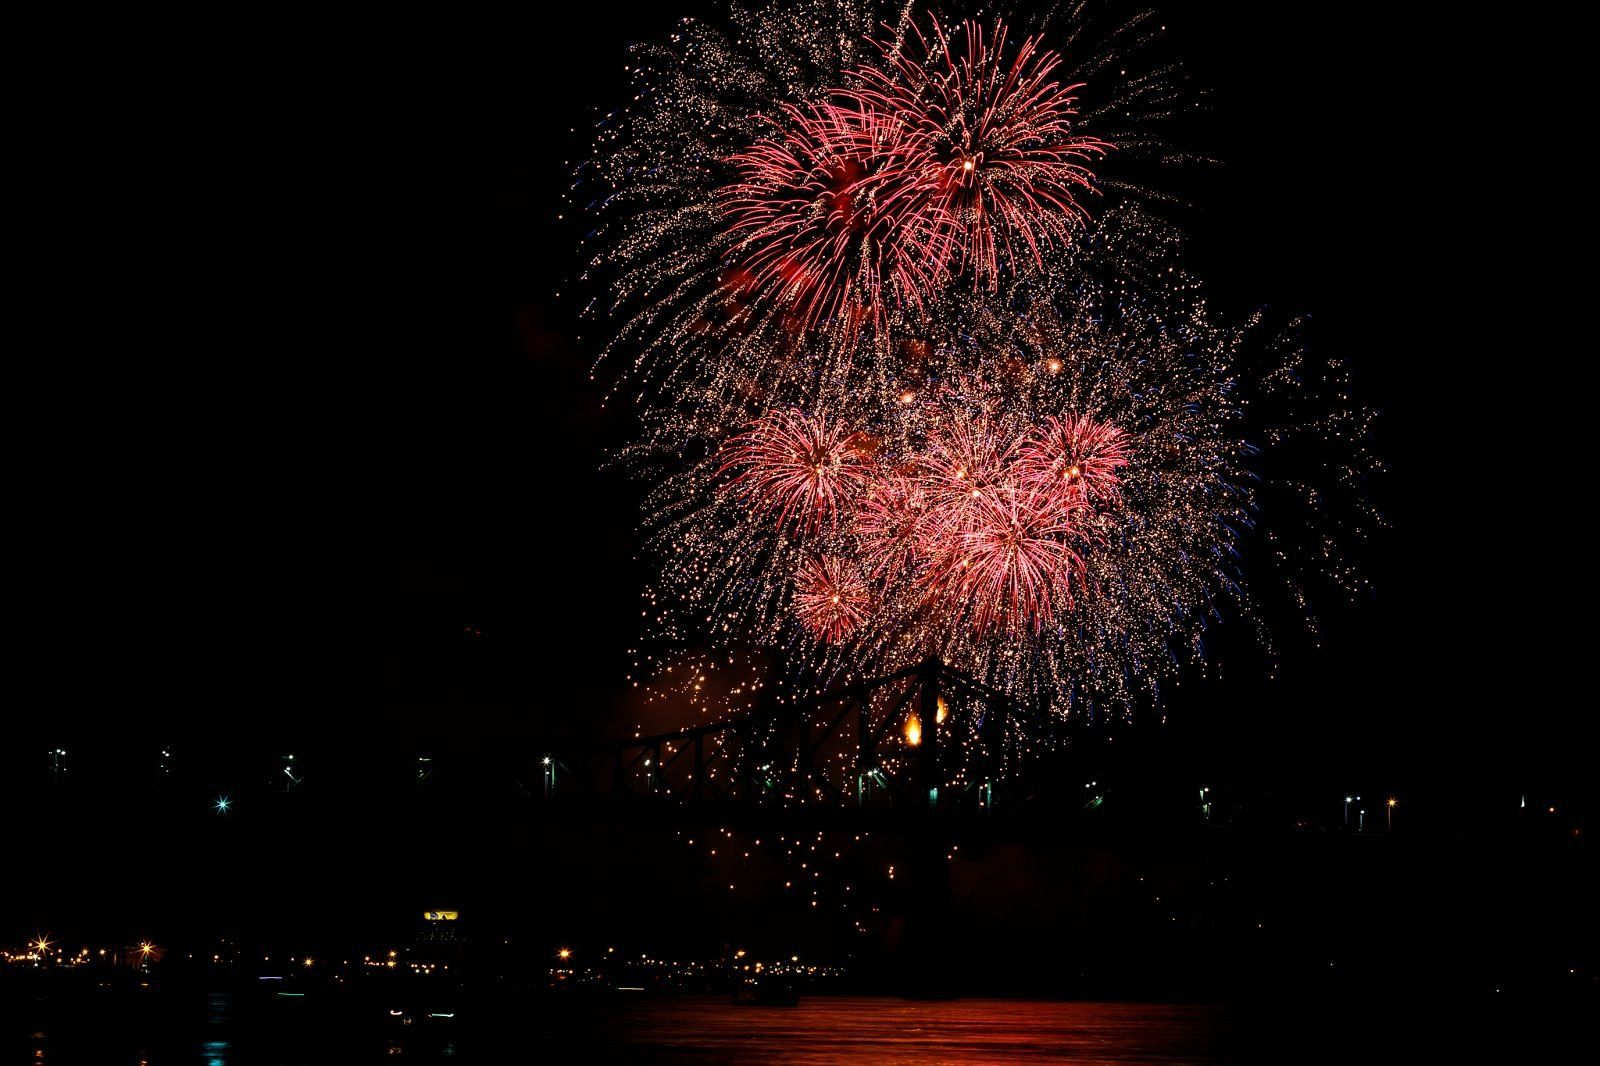 montreal_fireworks_competition_201725_1100.jpg